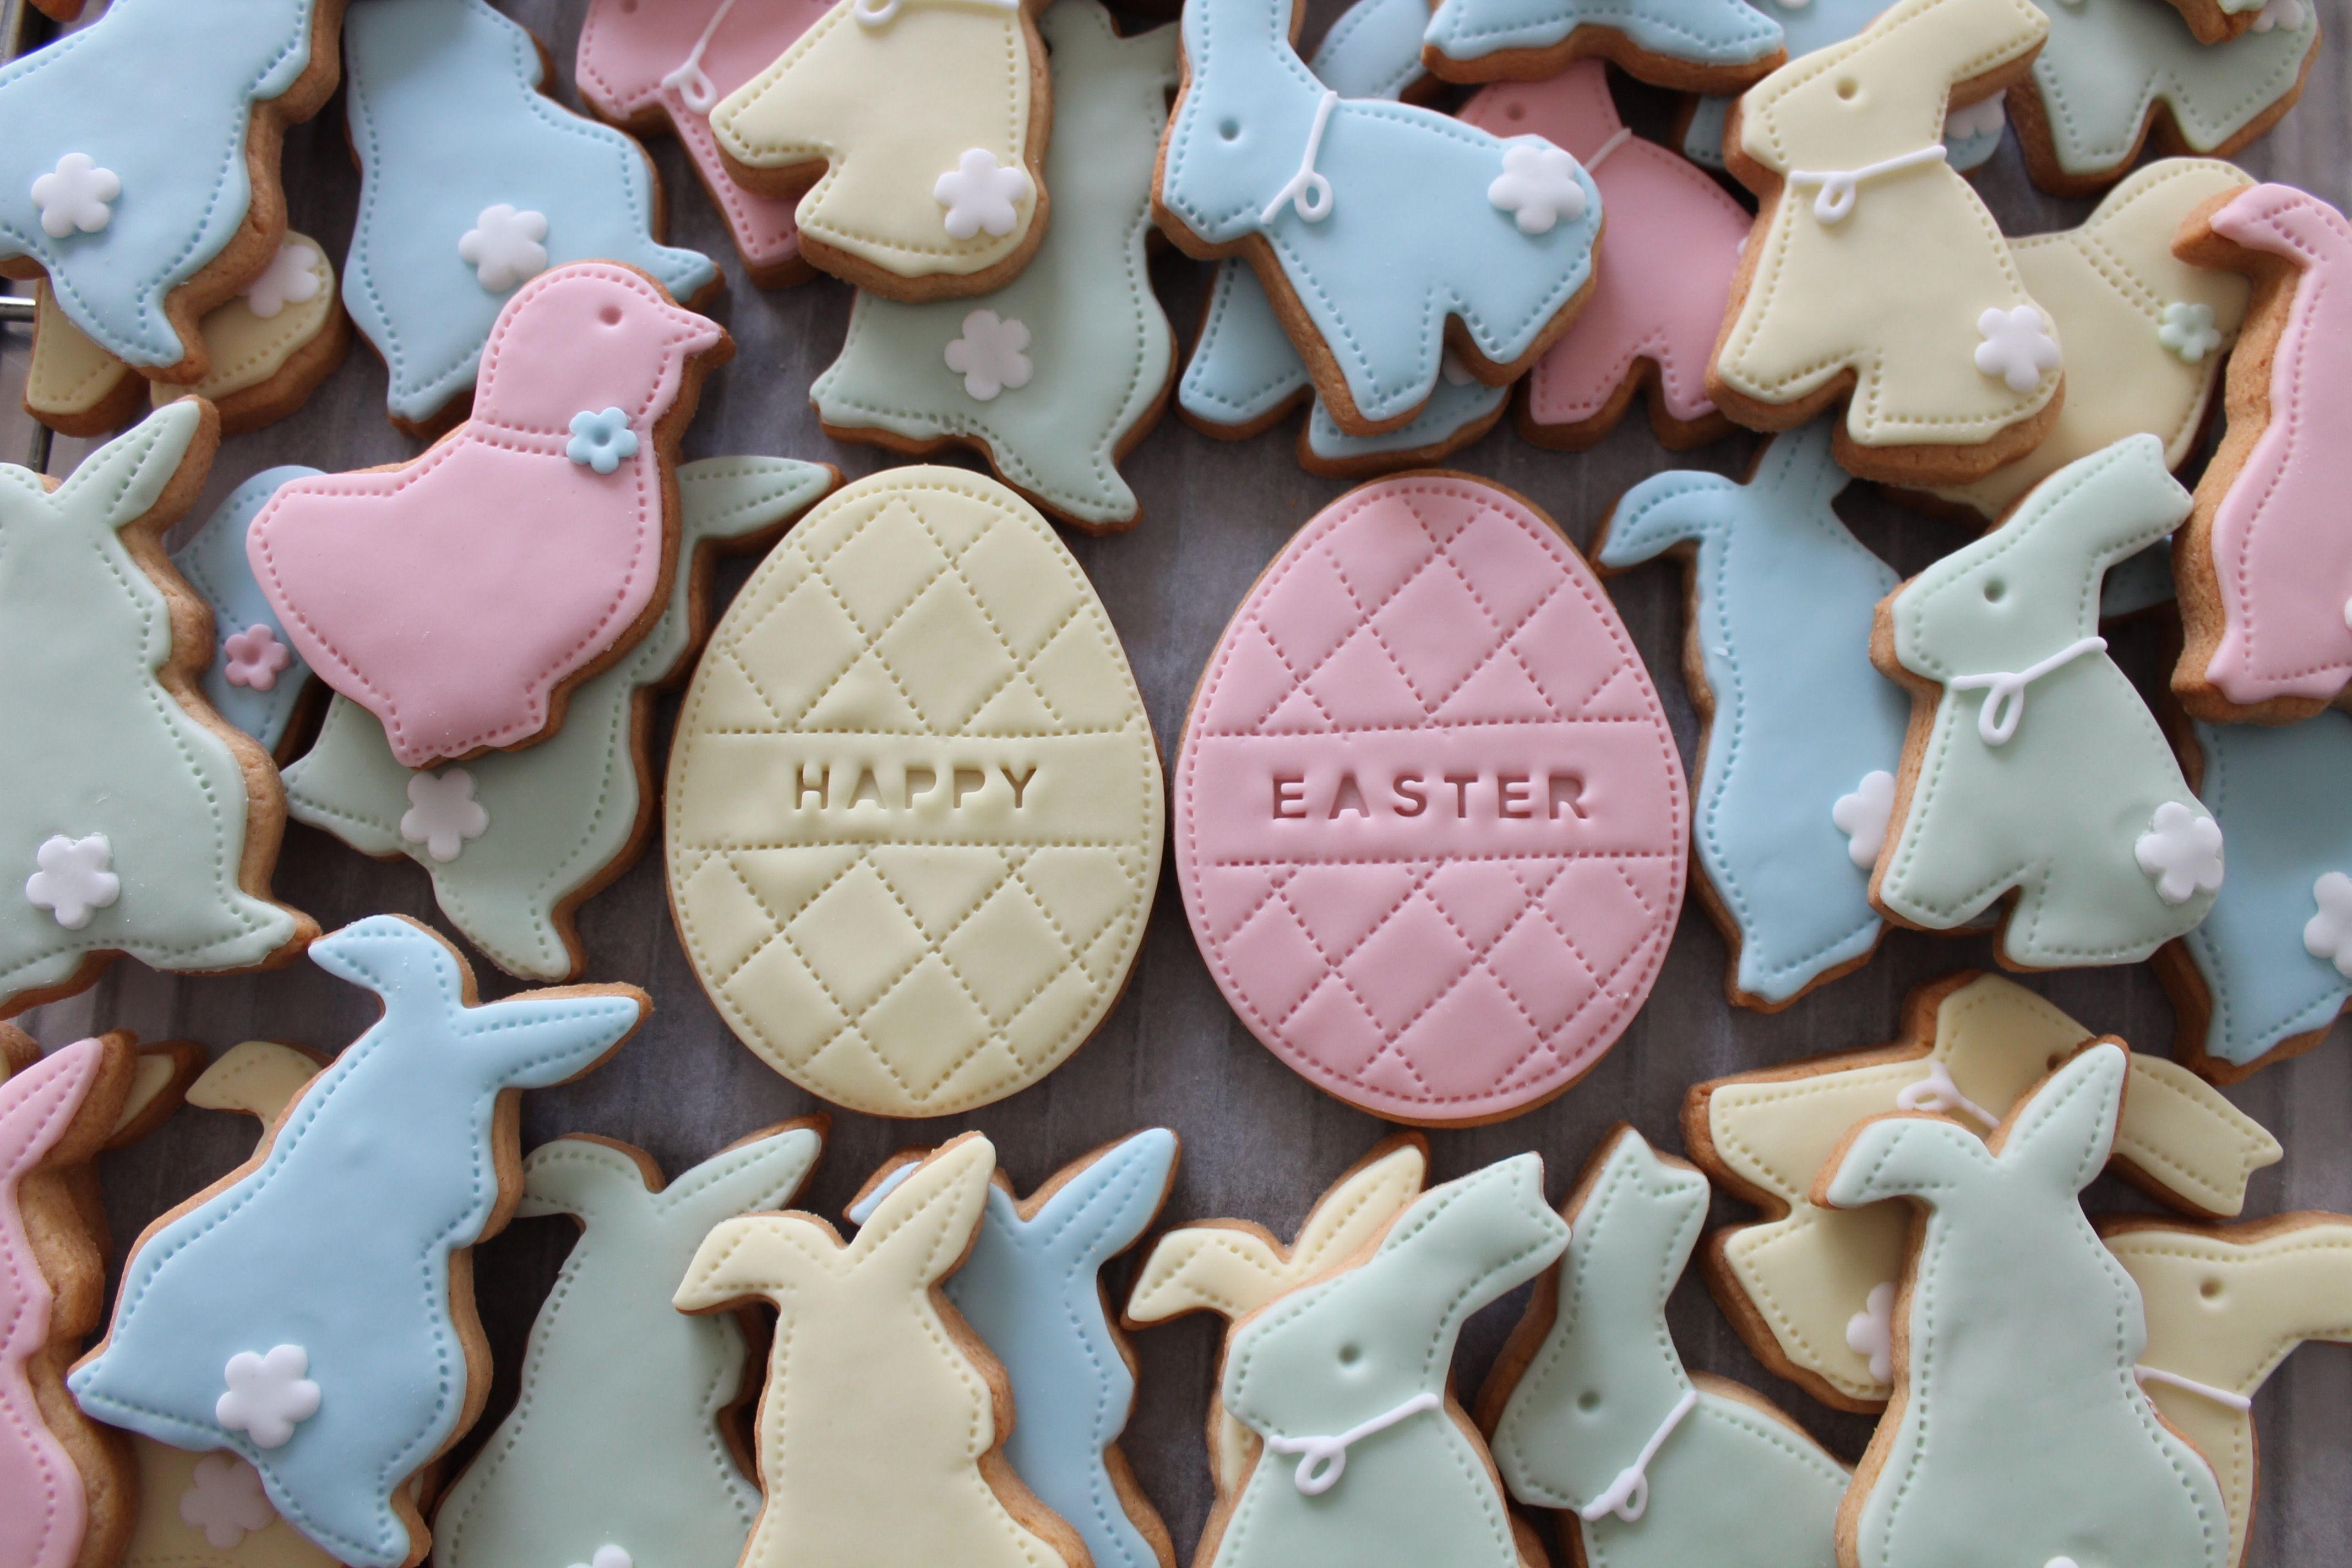 Easter biscuits by Nila Holden perfect for Easter Egg Hunts, Easter parties or styling your home for Easter Weekend